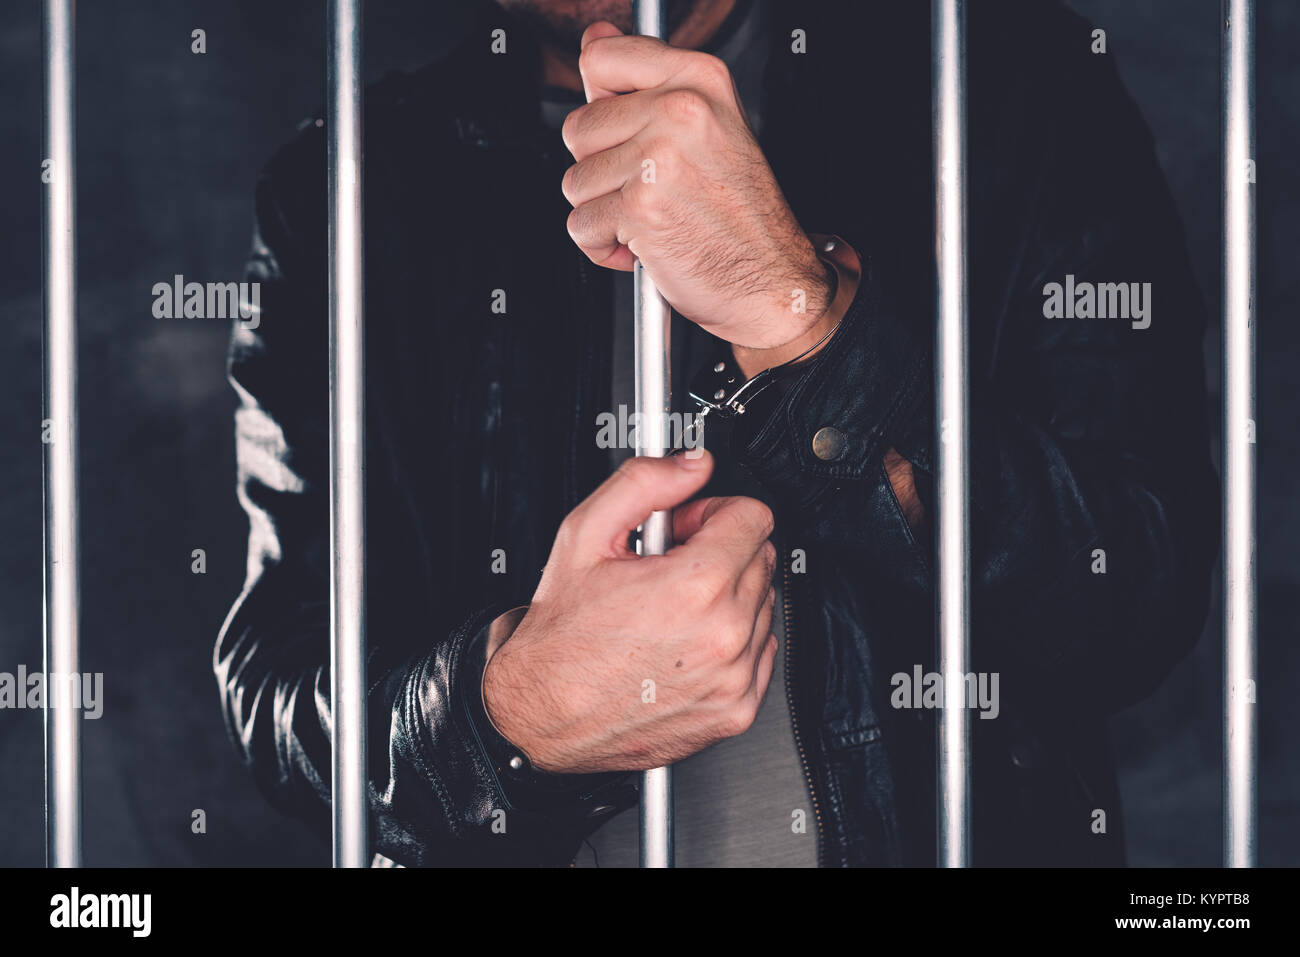 Handcuffed man behind prison bars. Arrested criminal male person imprisoned. - Stock Image